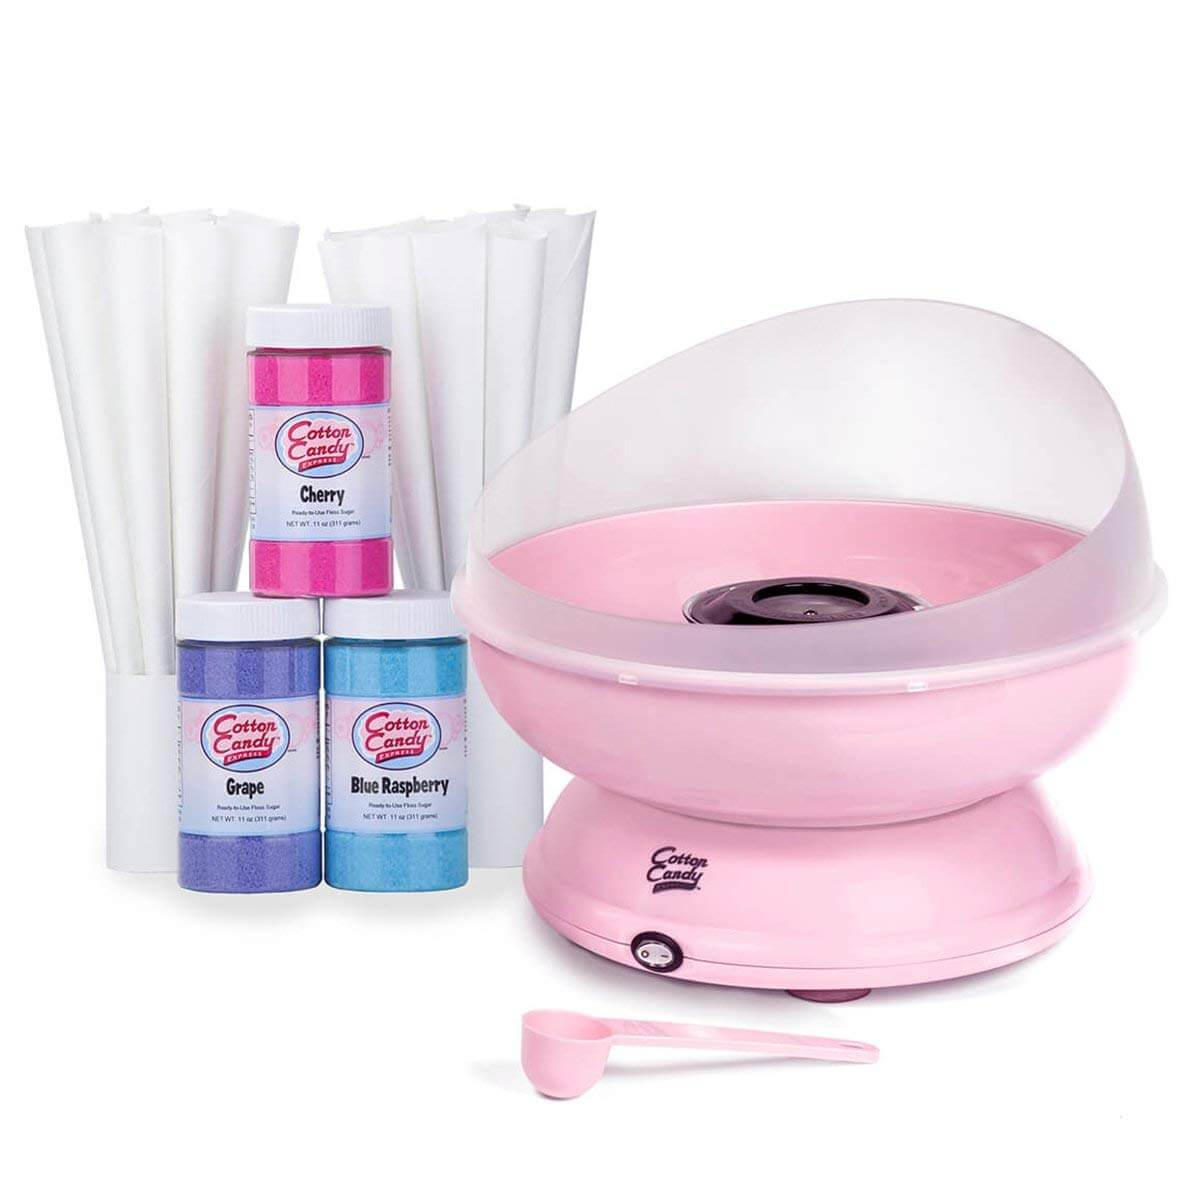 Cotton Candy Express Brand Party Kit